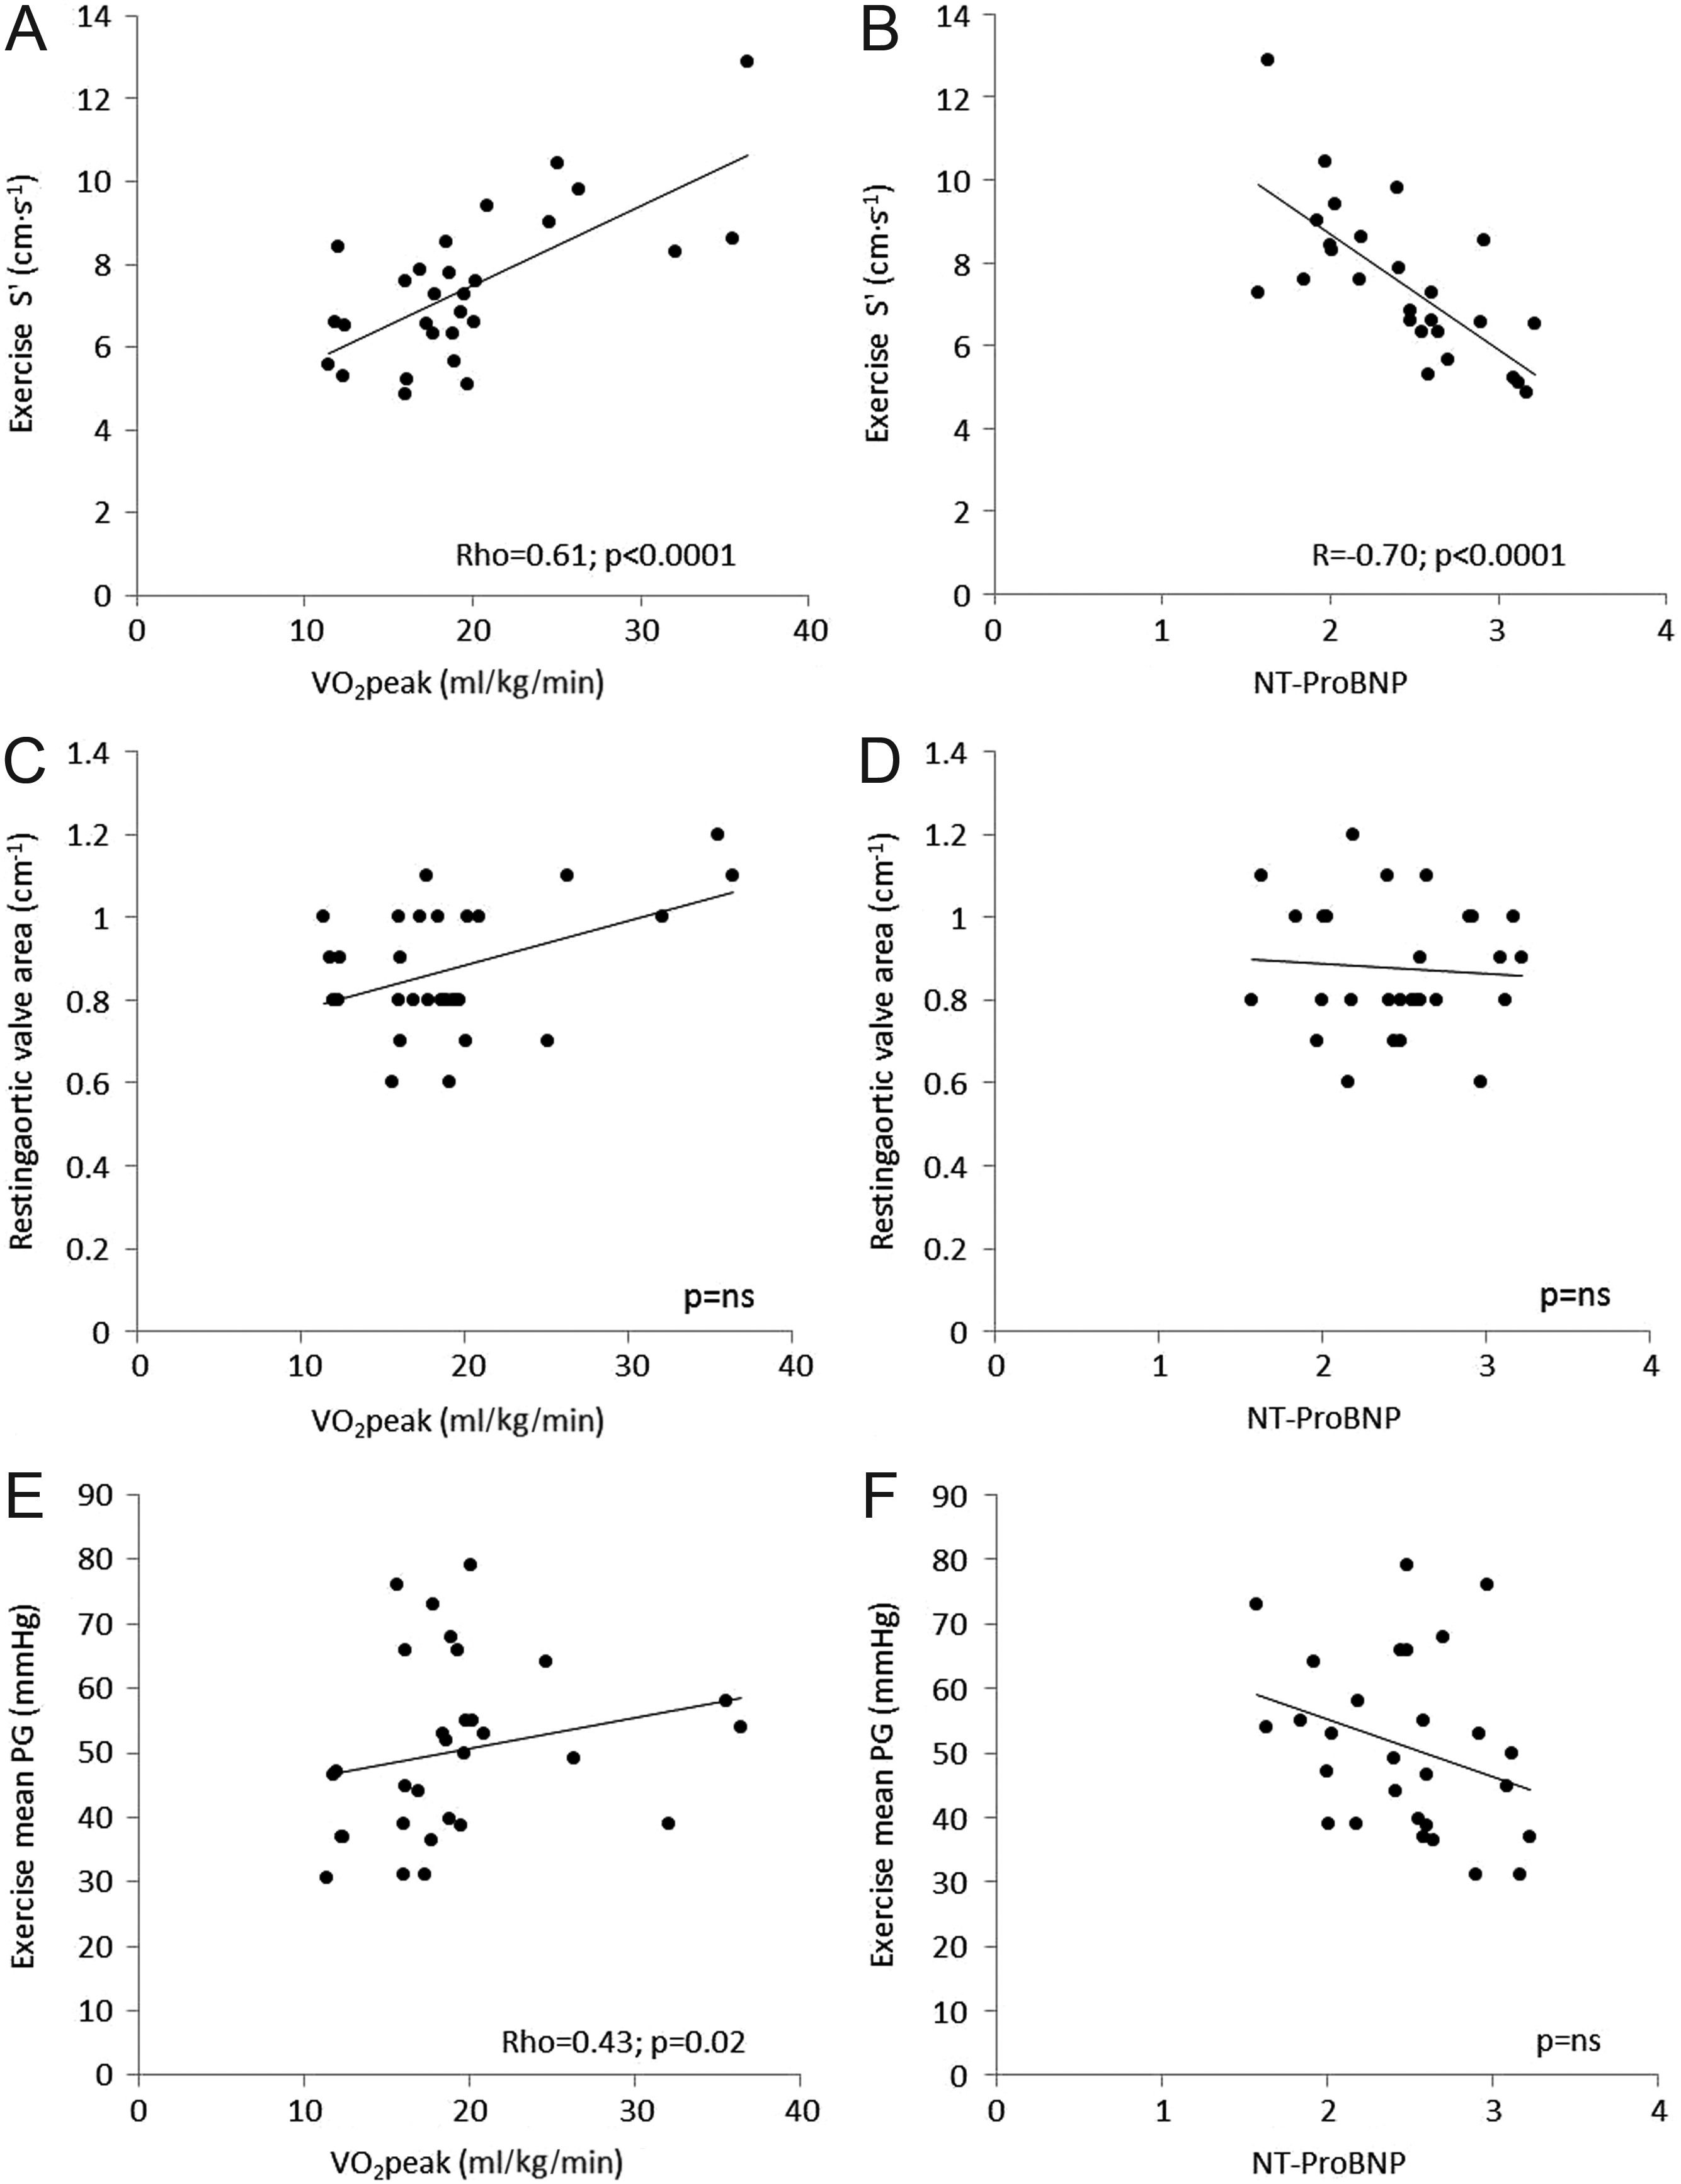 The importance of contractile reserve in predicting exercise